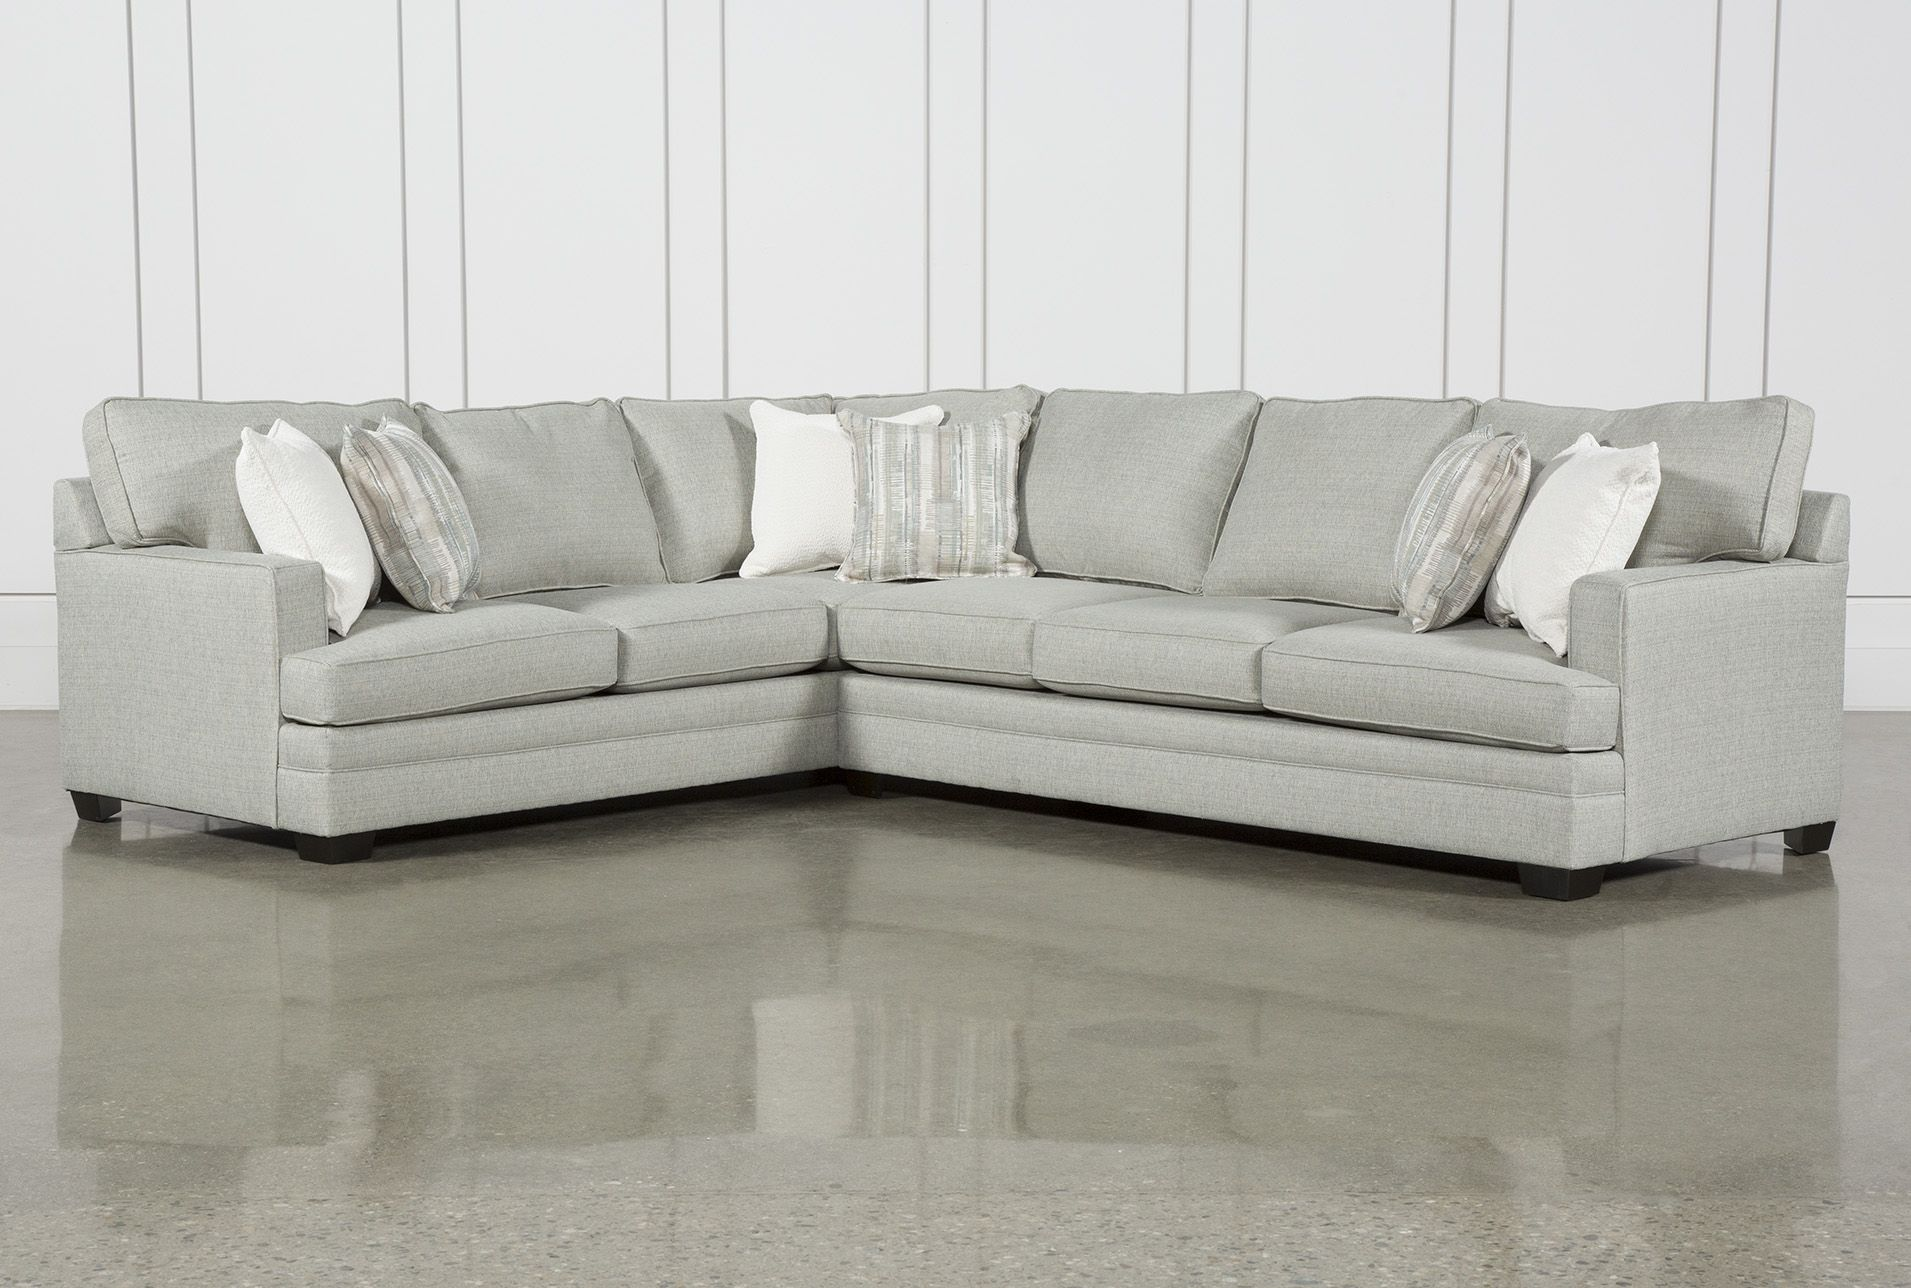 Josephine Ii 2 Piece Sectional With Right Arm Facing Sofa 2 Piece Sectional Sofa Sectional Sofa Sofa